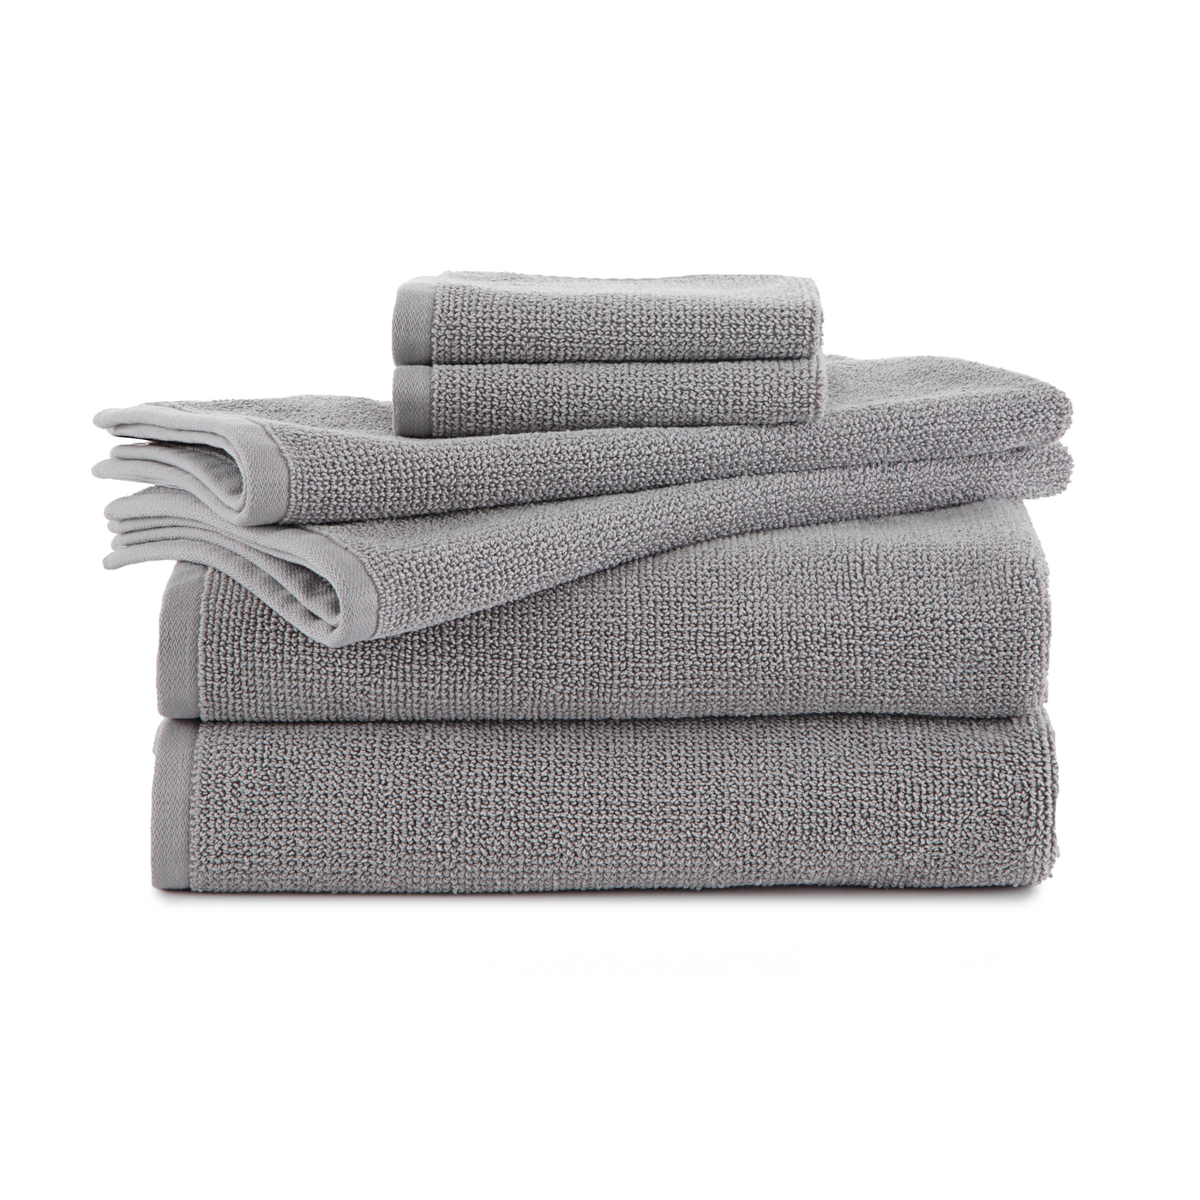 EcoPure Serene 6 Piece Organic Cotton Bath Towel Set